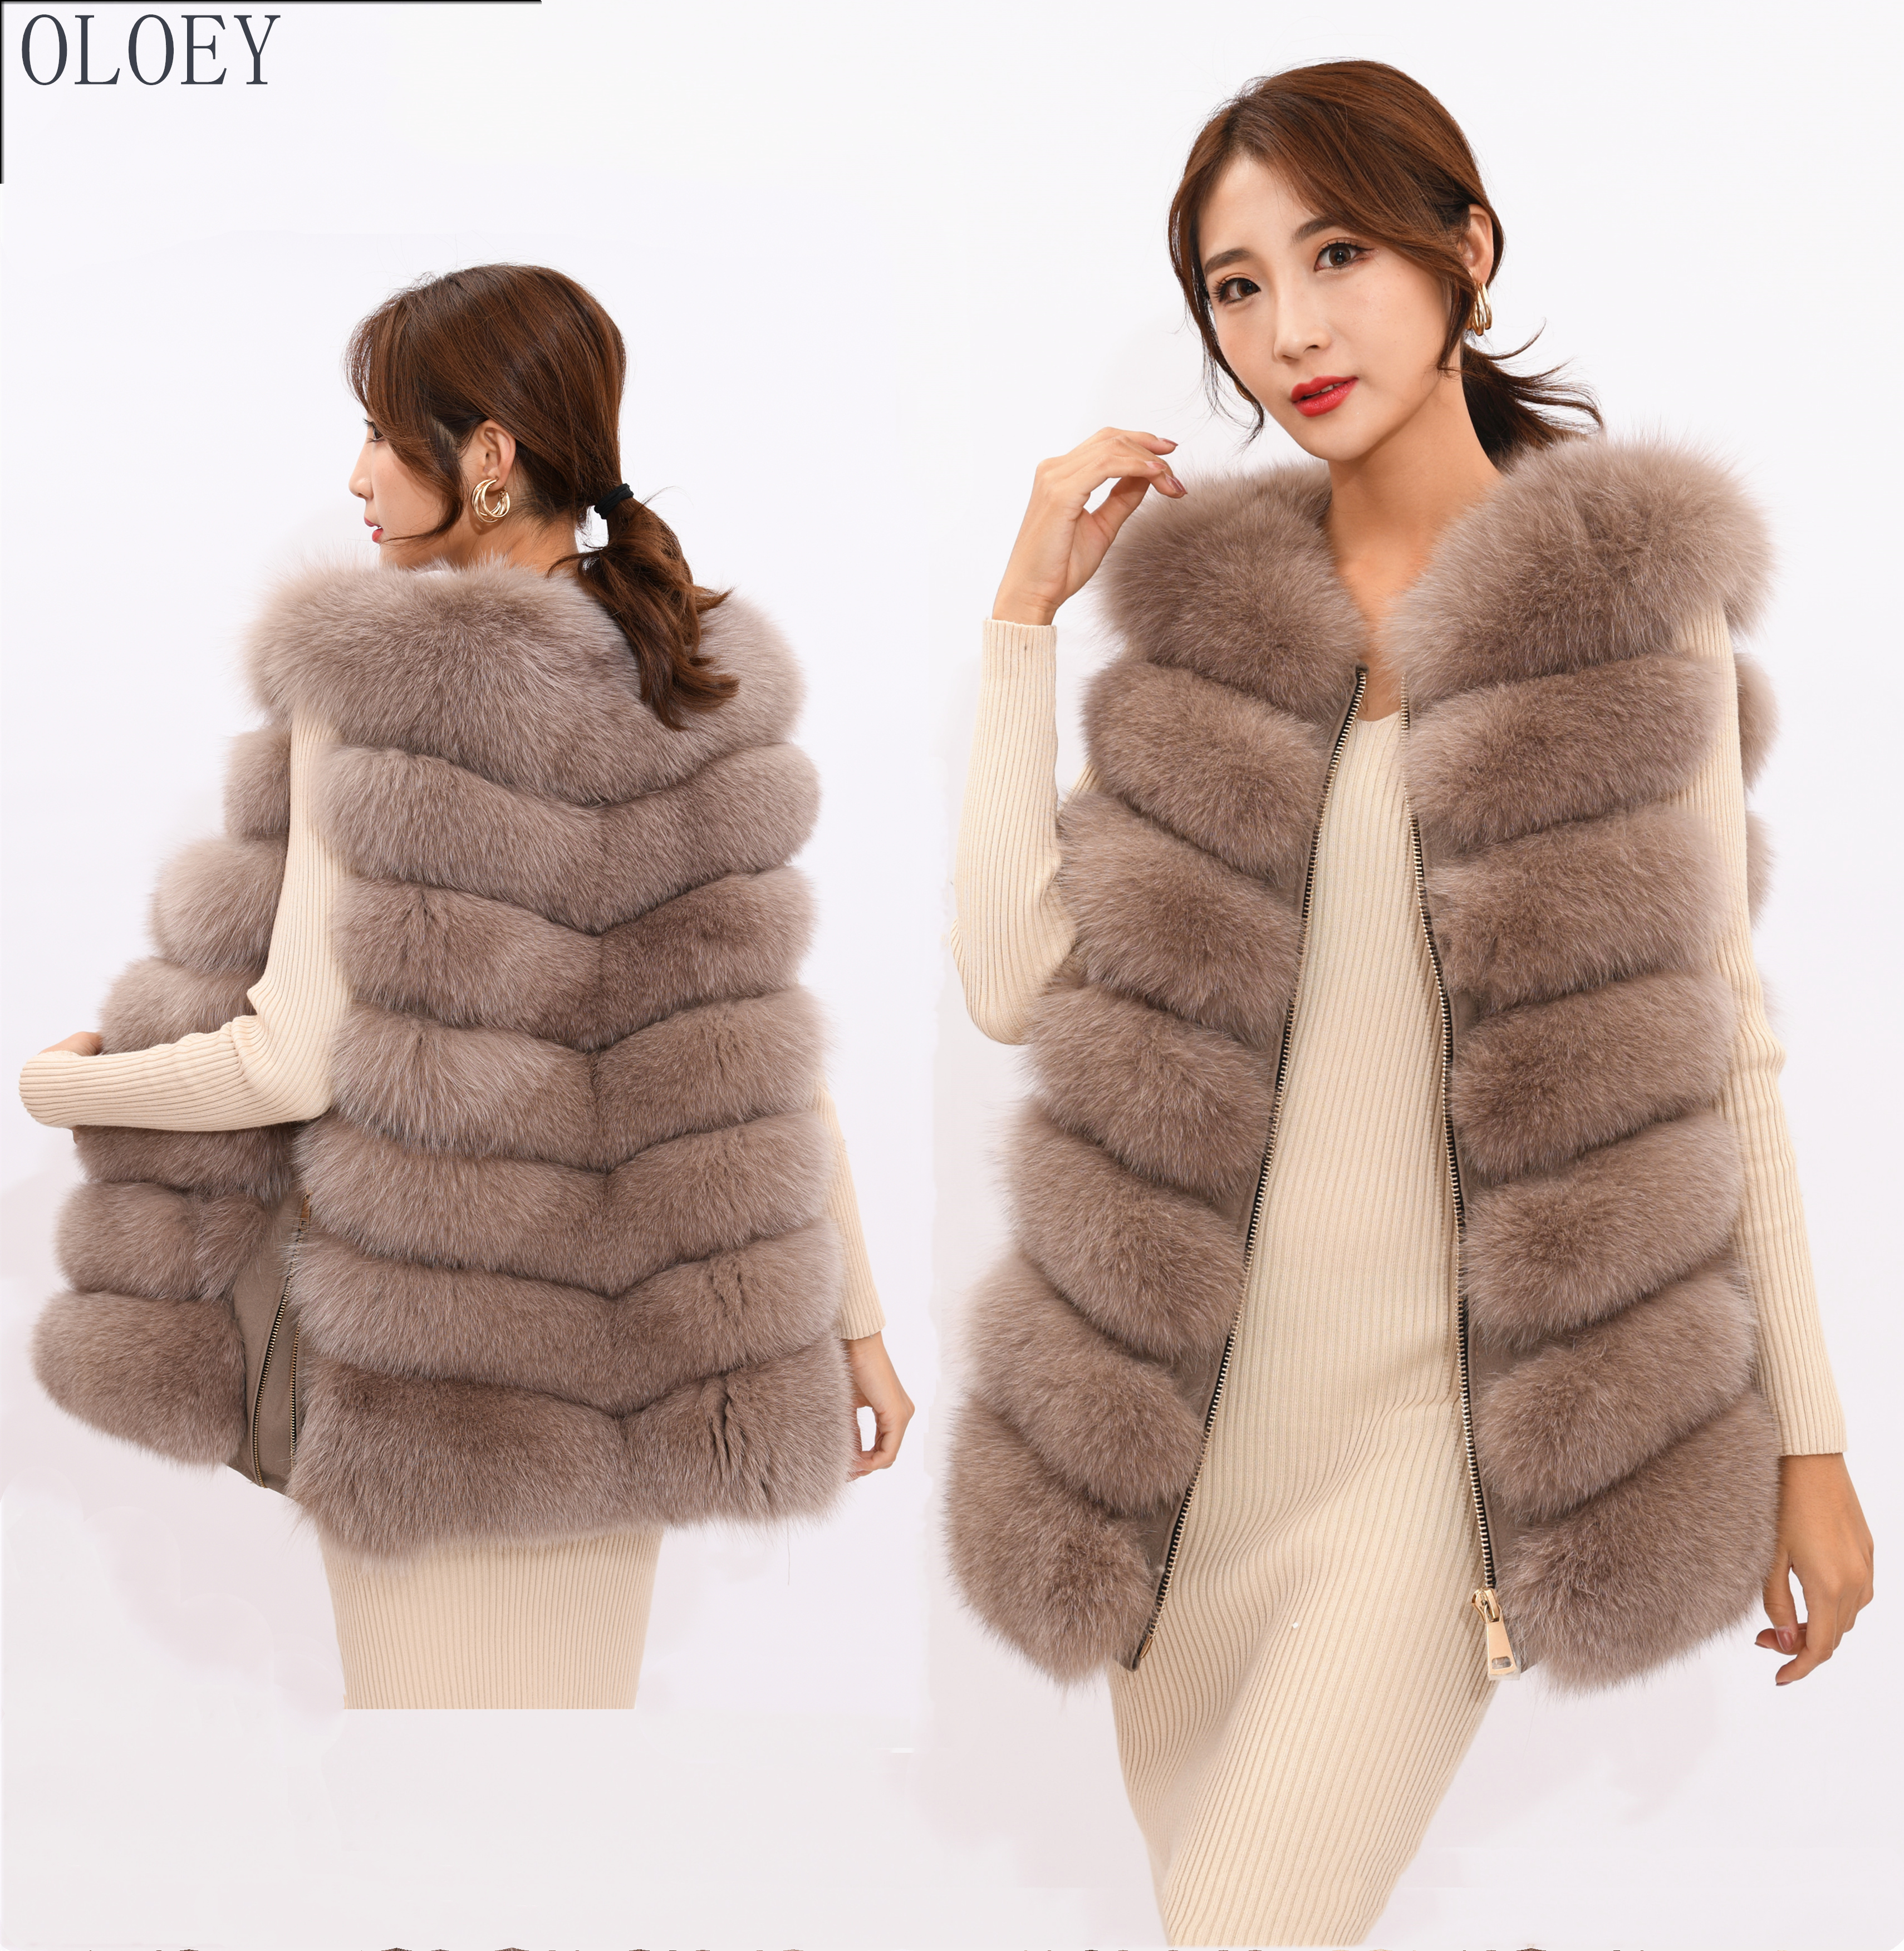 2019 new women's winter real fox fur vest, real fox fur jacket, 100% natural real fur coat, high quality stylish warm sleeveless-in Real Fur from Women's Clothing